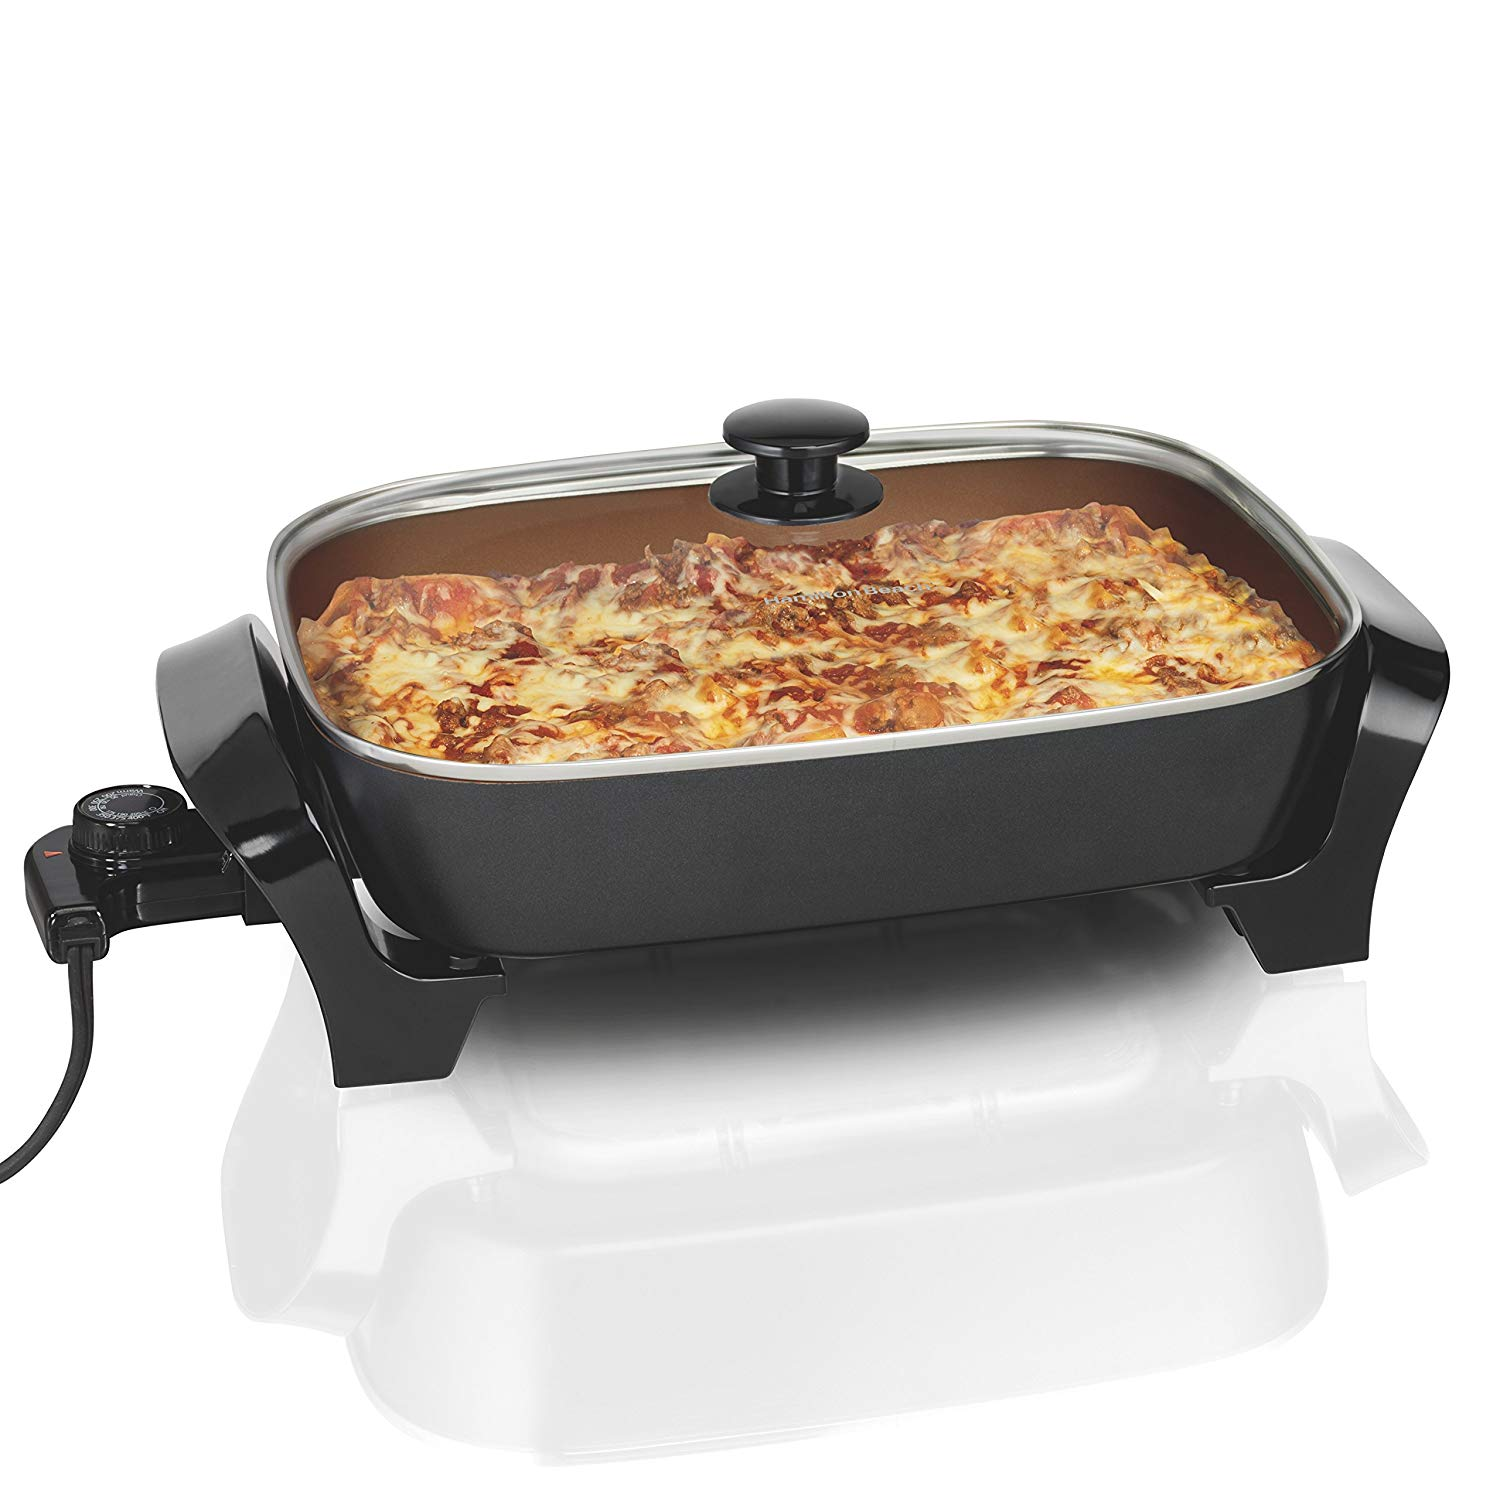 10 Best Electric Skillets of 2019 | Reviews 5